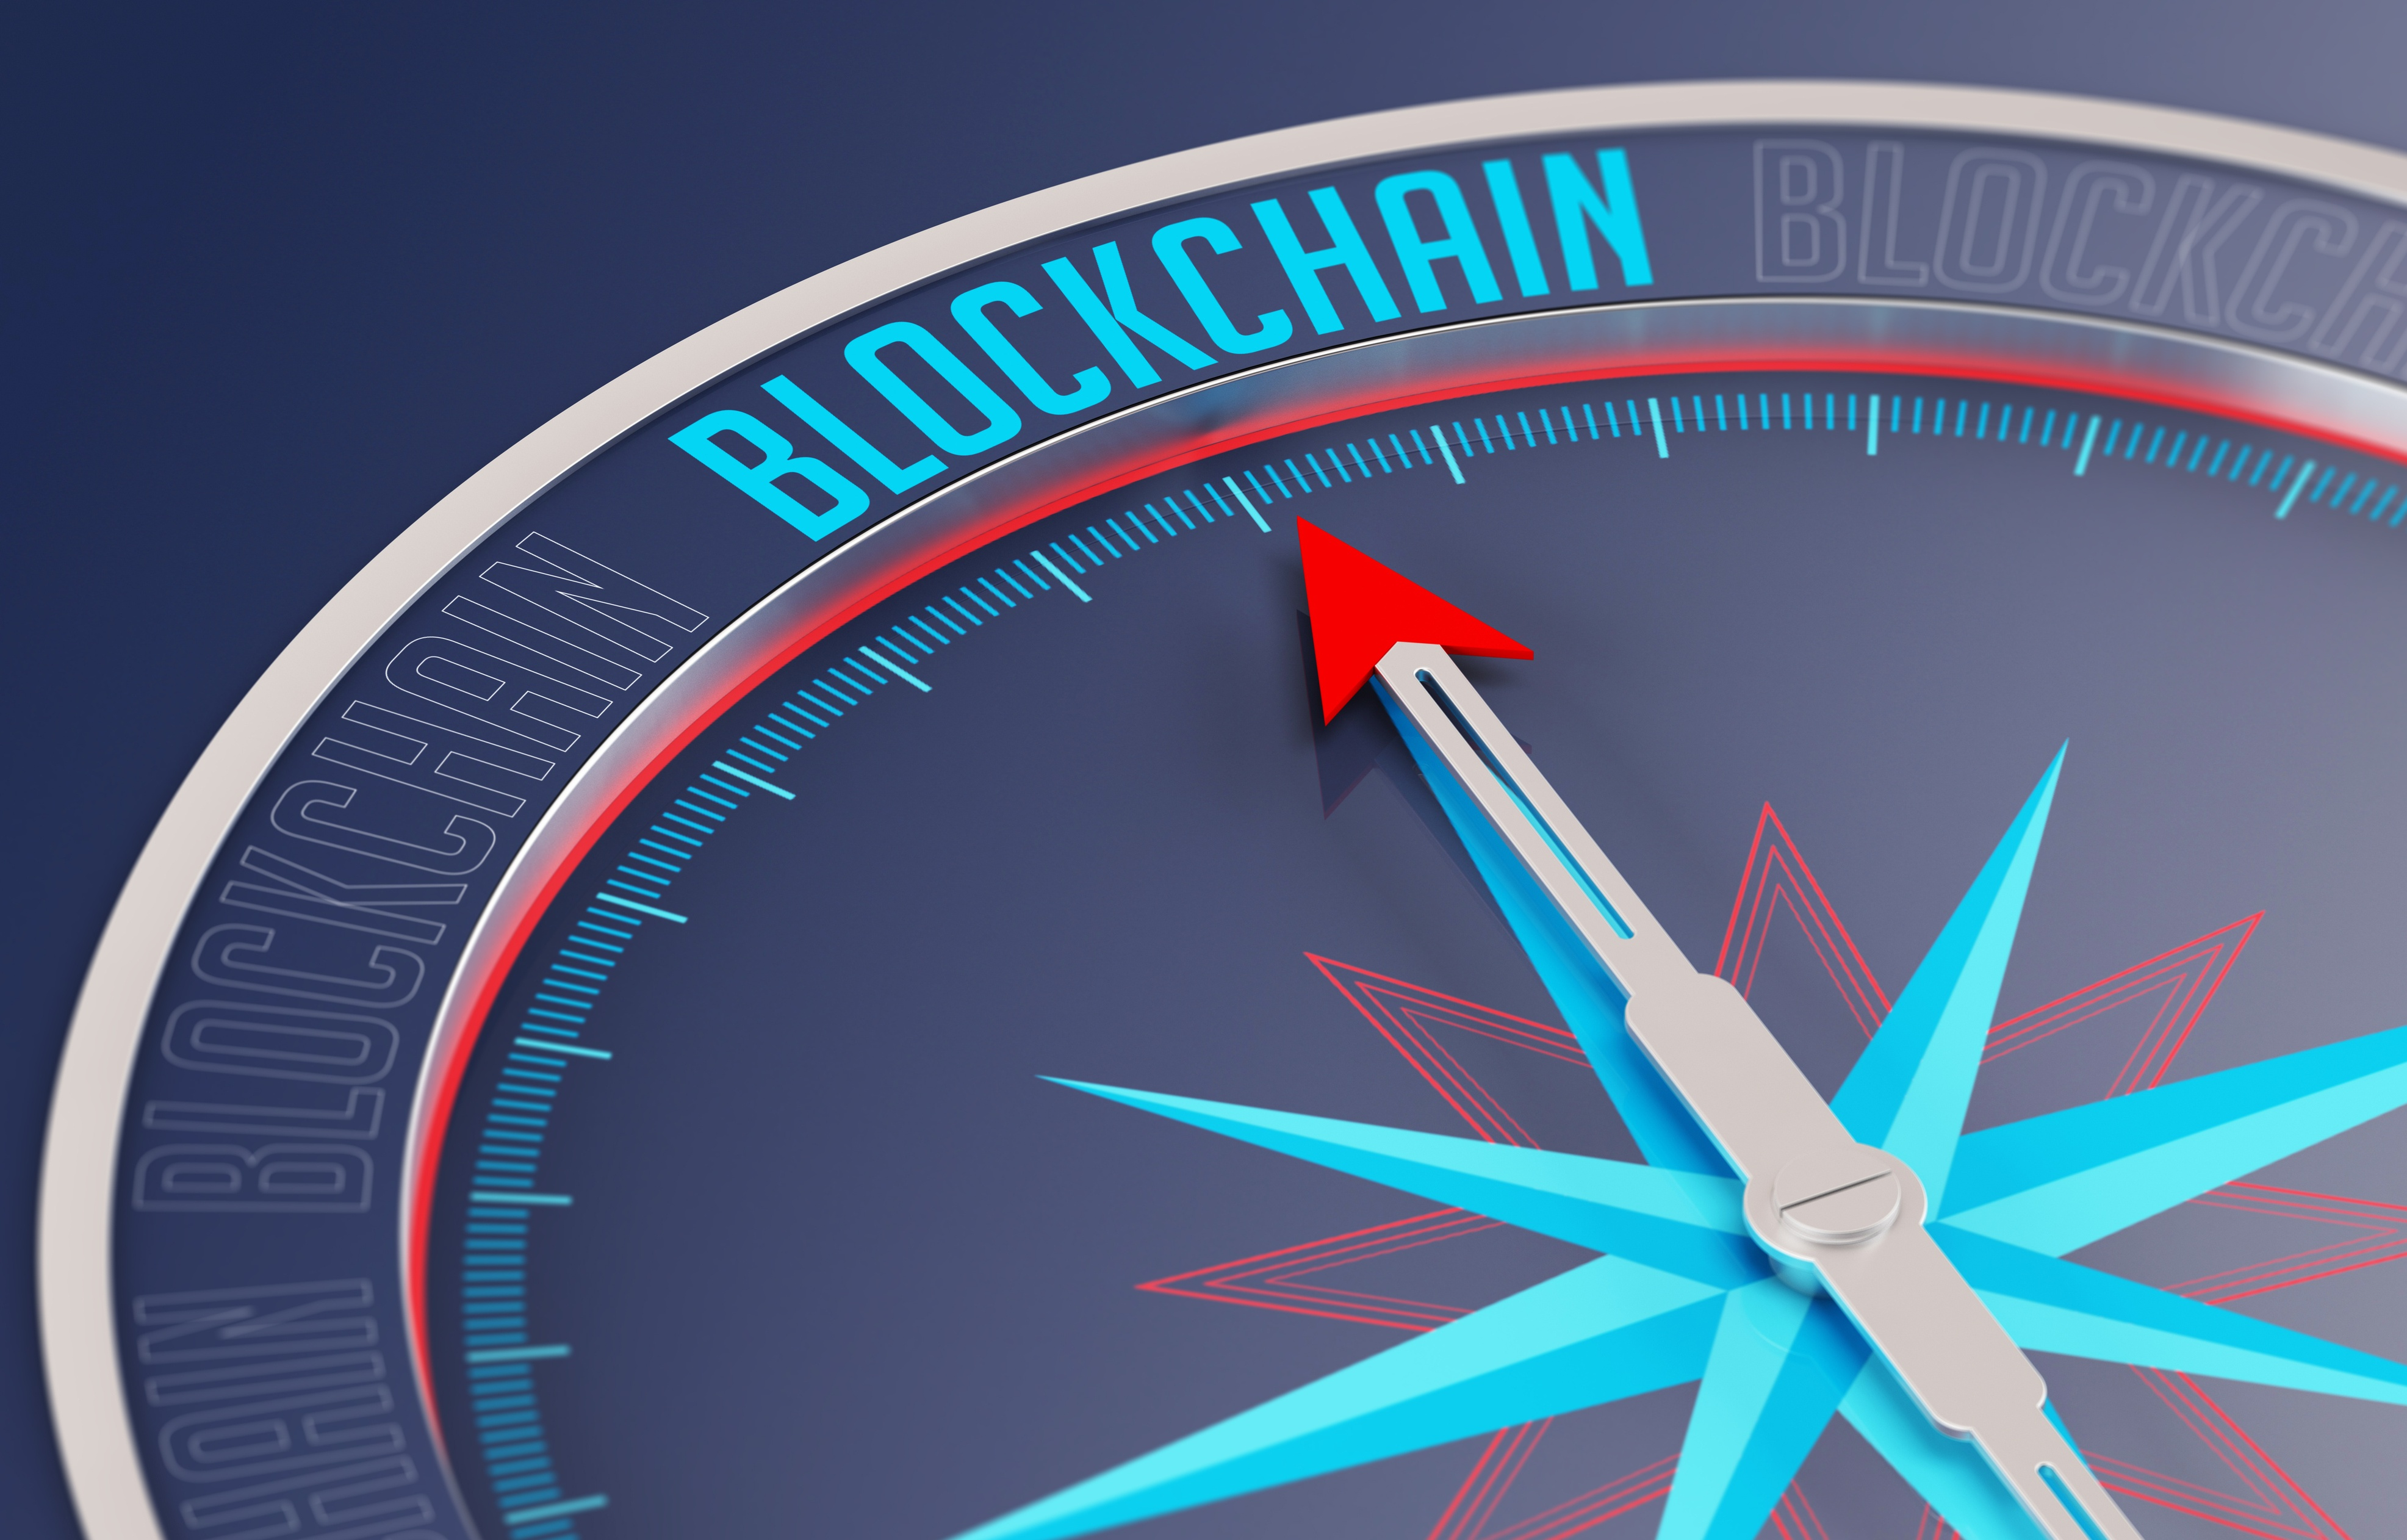 Bitcoin may or may not be a bubble, but the underlying encryption technology that makes it possible, Blockchain, is here to stay. Here's what mobile app developers need to know about blockchain.